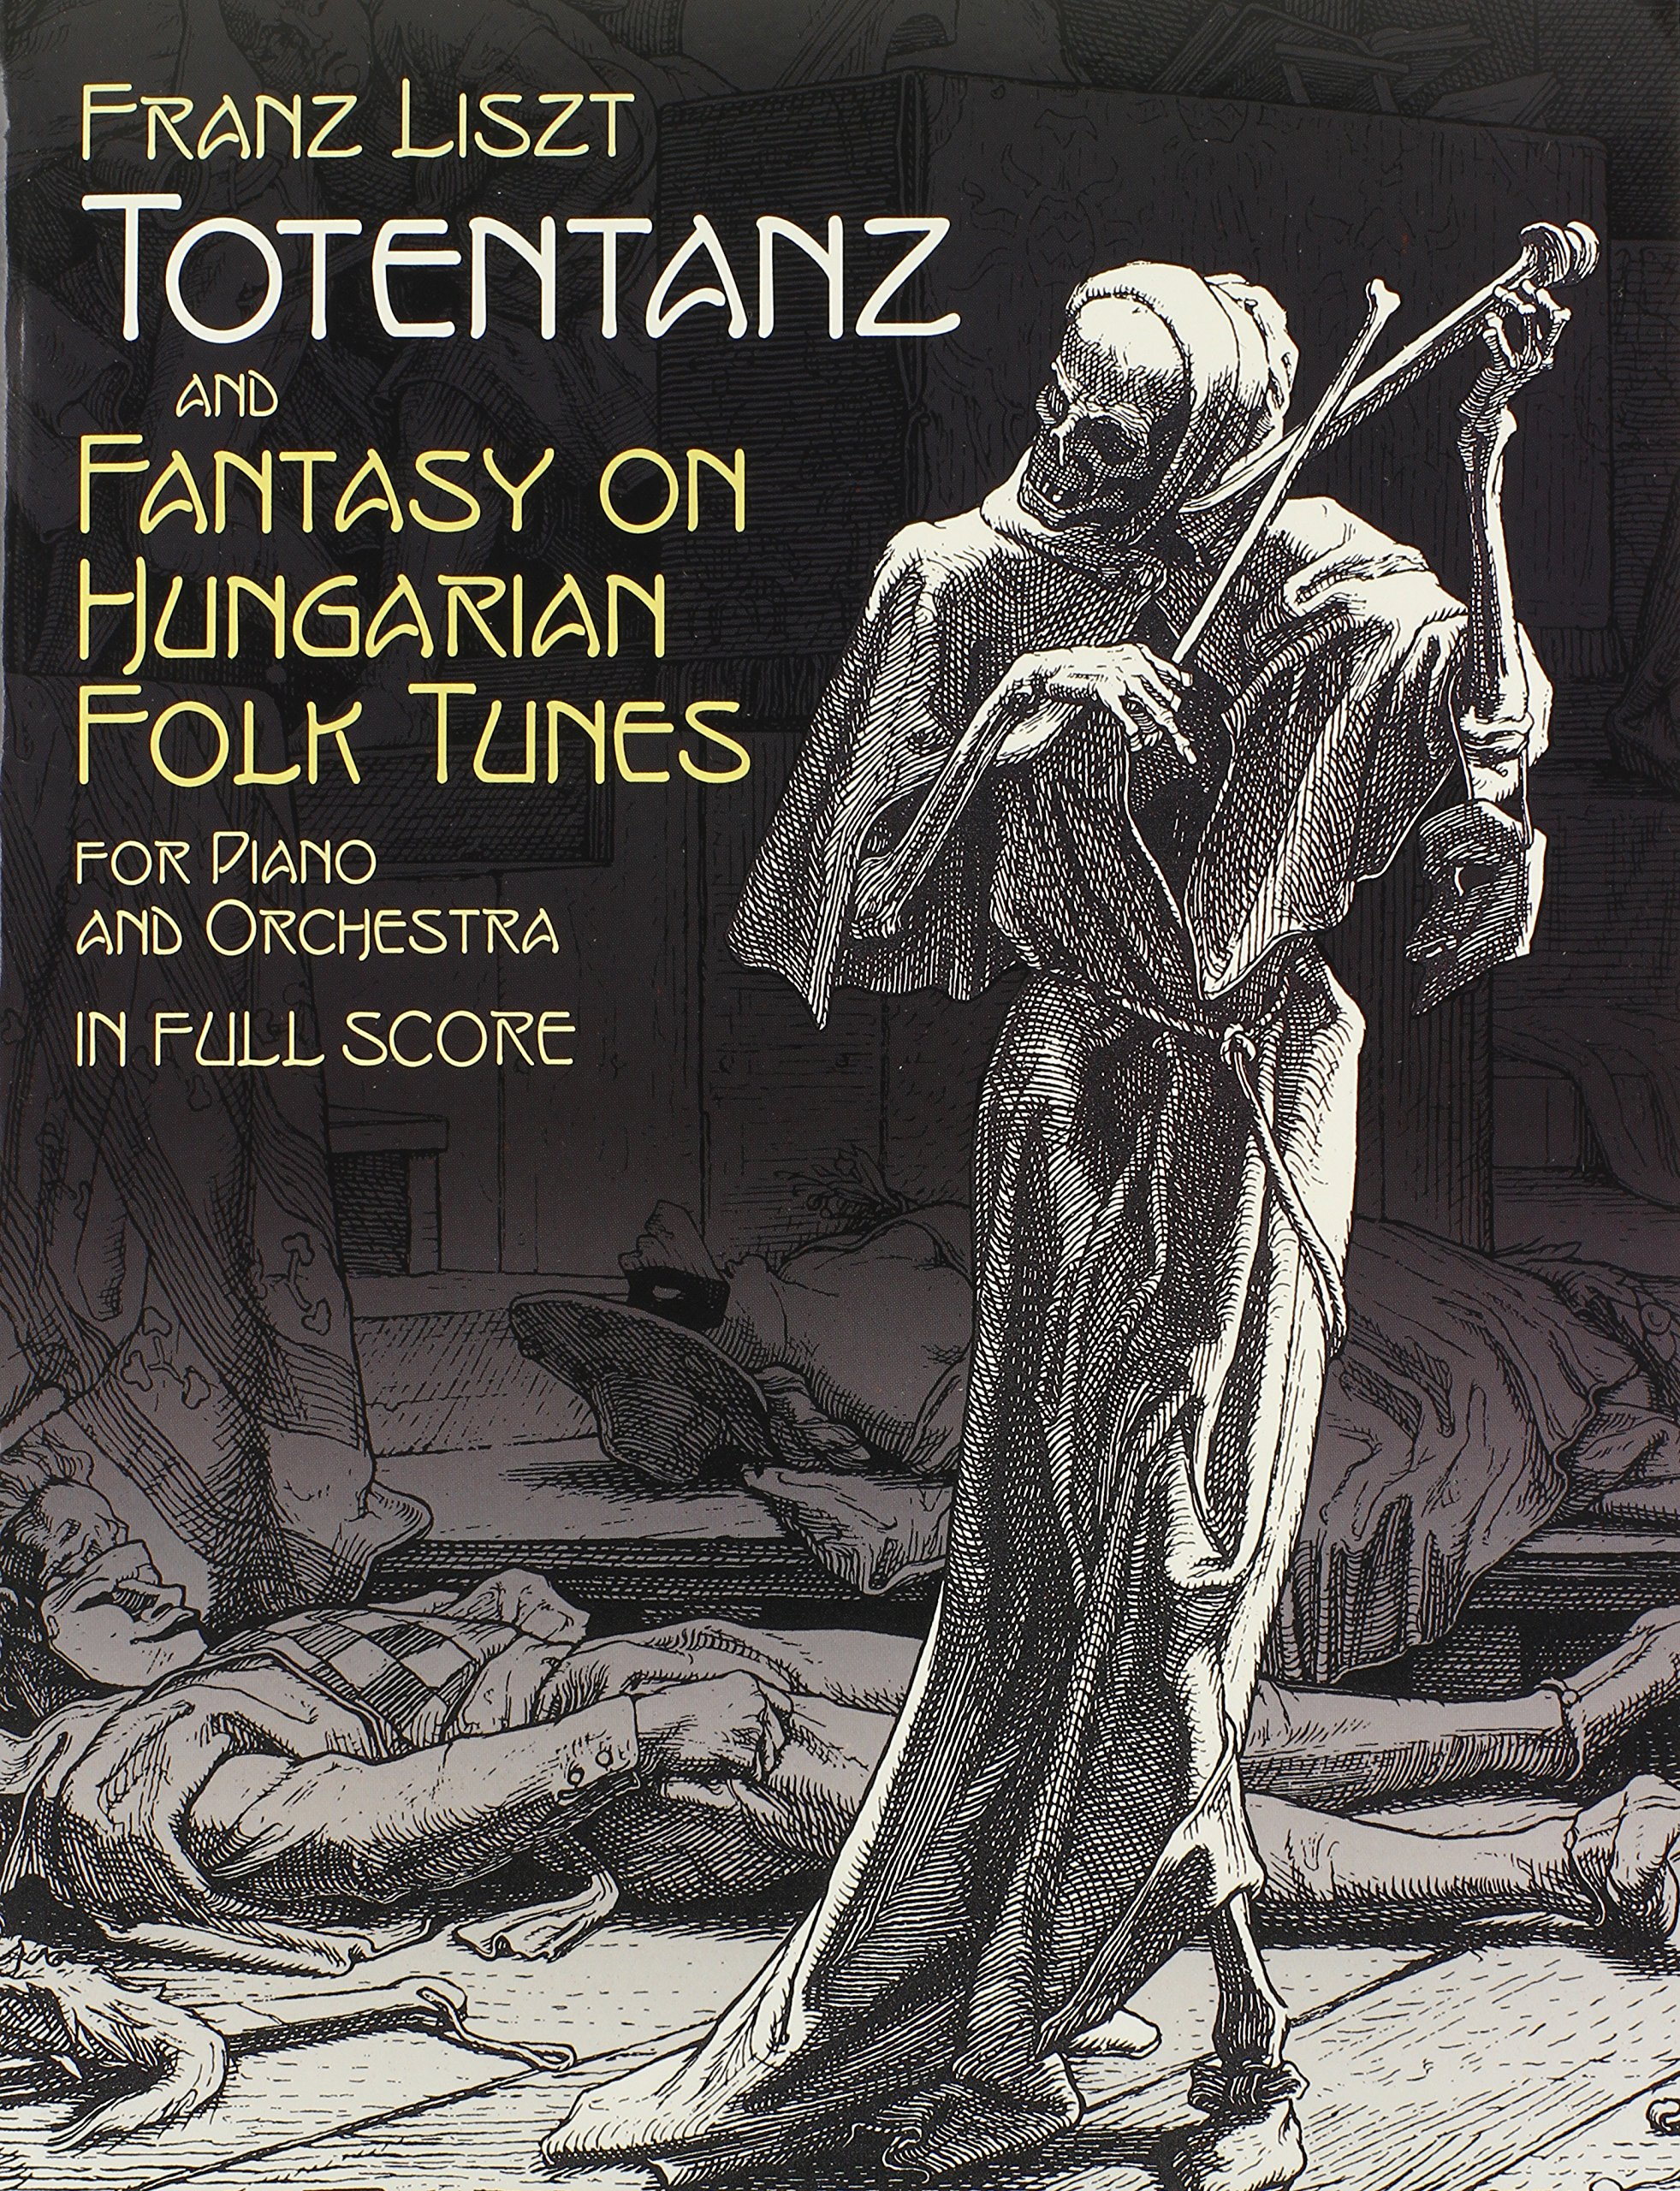 Totentanz and Fantasy on Hungarian Folk Tunes for Piano and Orchestra: in Full  Score (Dover Music Scores) Paperback – May 28, 2004